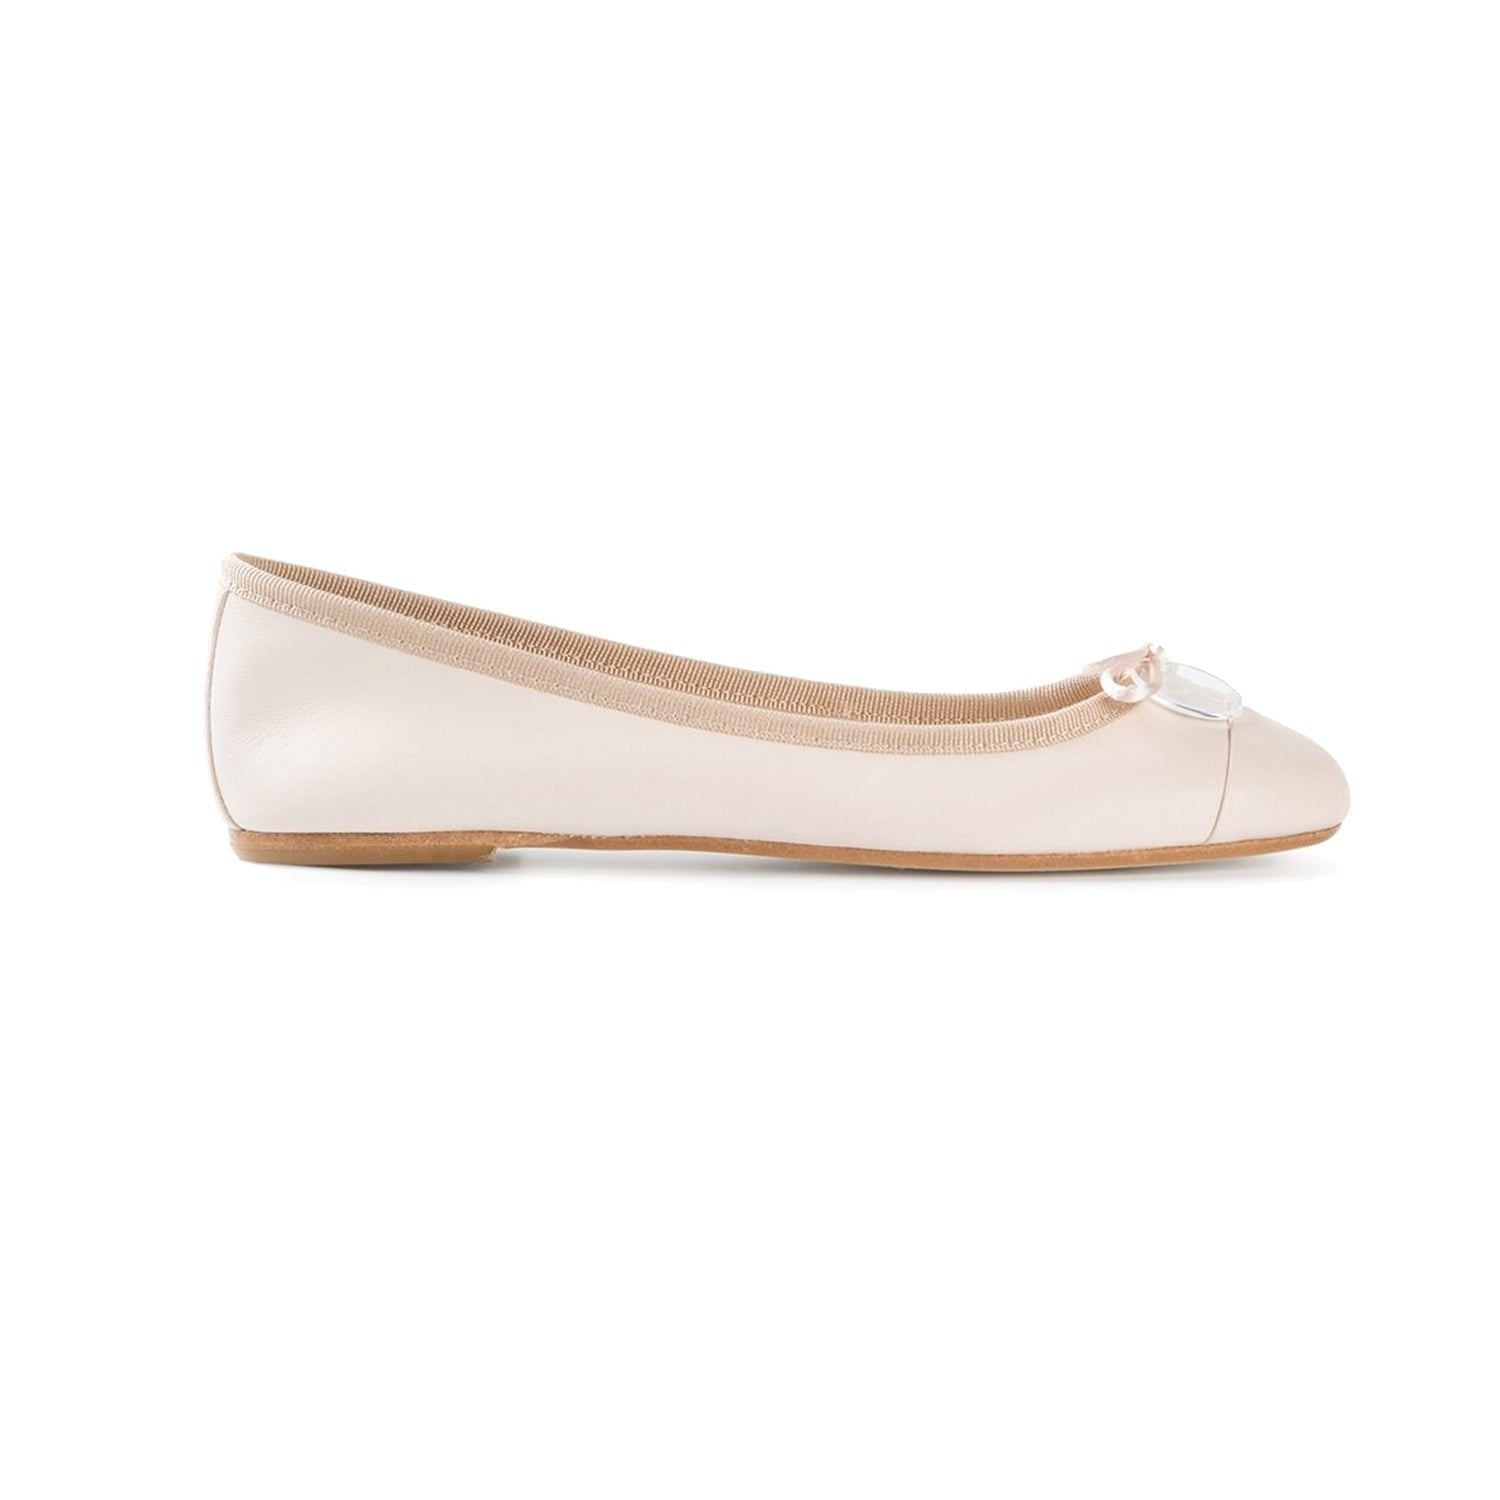 Anna Baiguera Annechic Ballerina Flat 37 Powder Muse Boutique Outlet